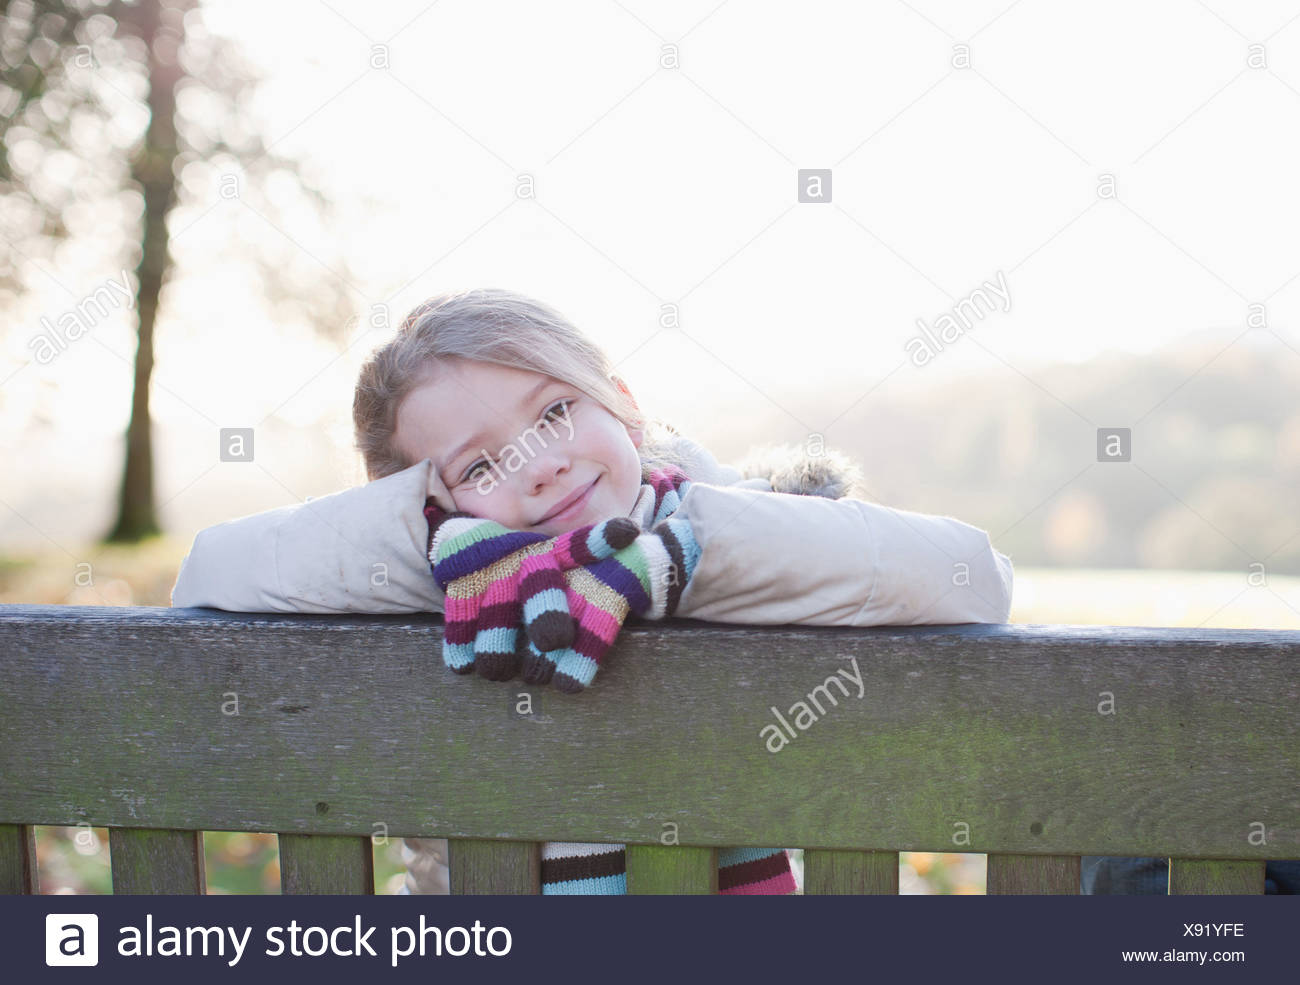 Girl sitting on bench outdoors in autumn - Stock Image